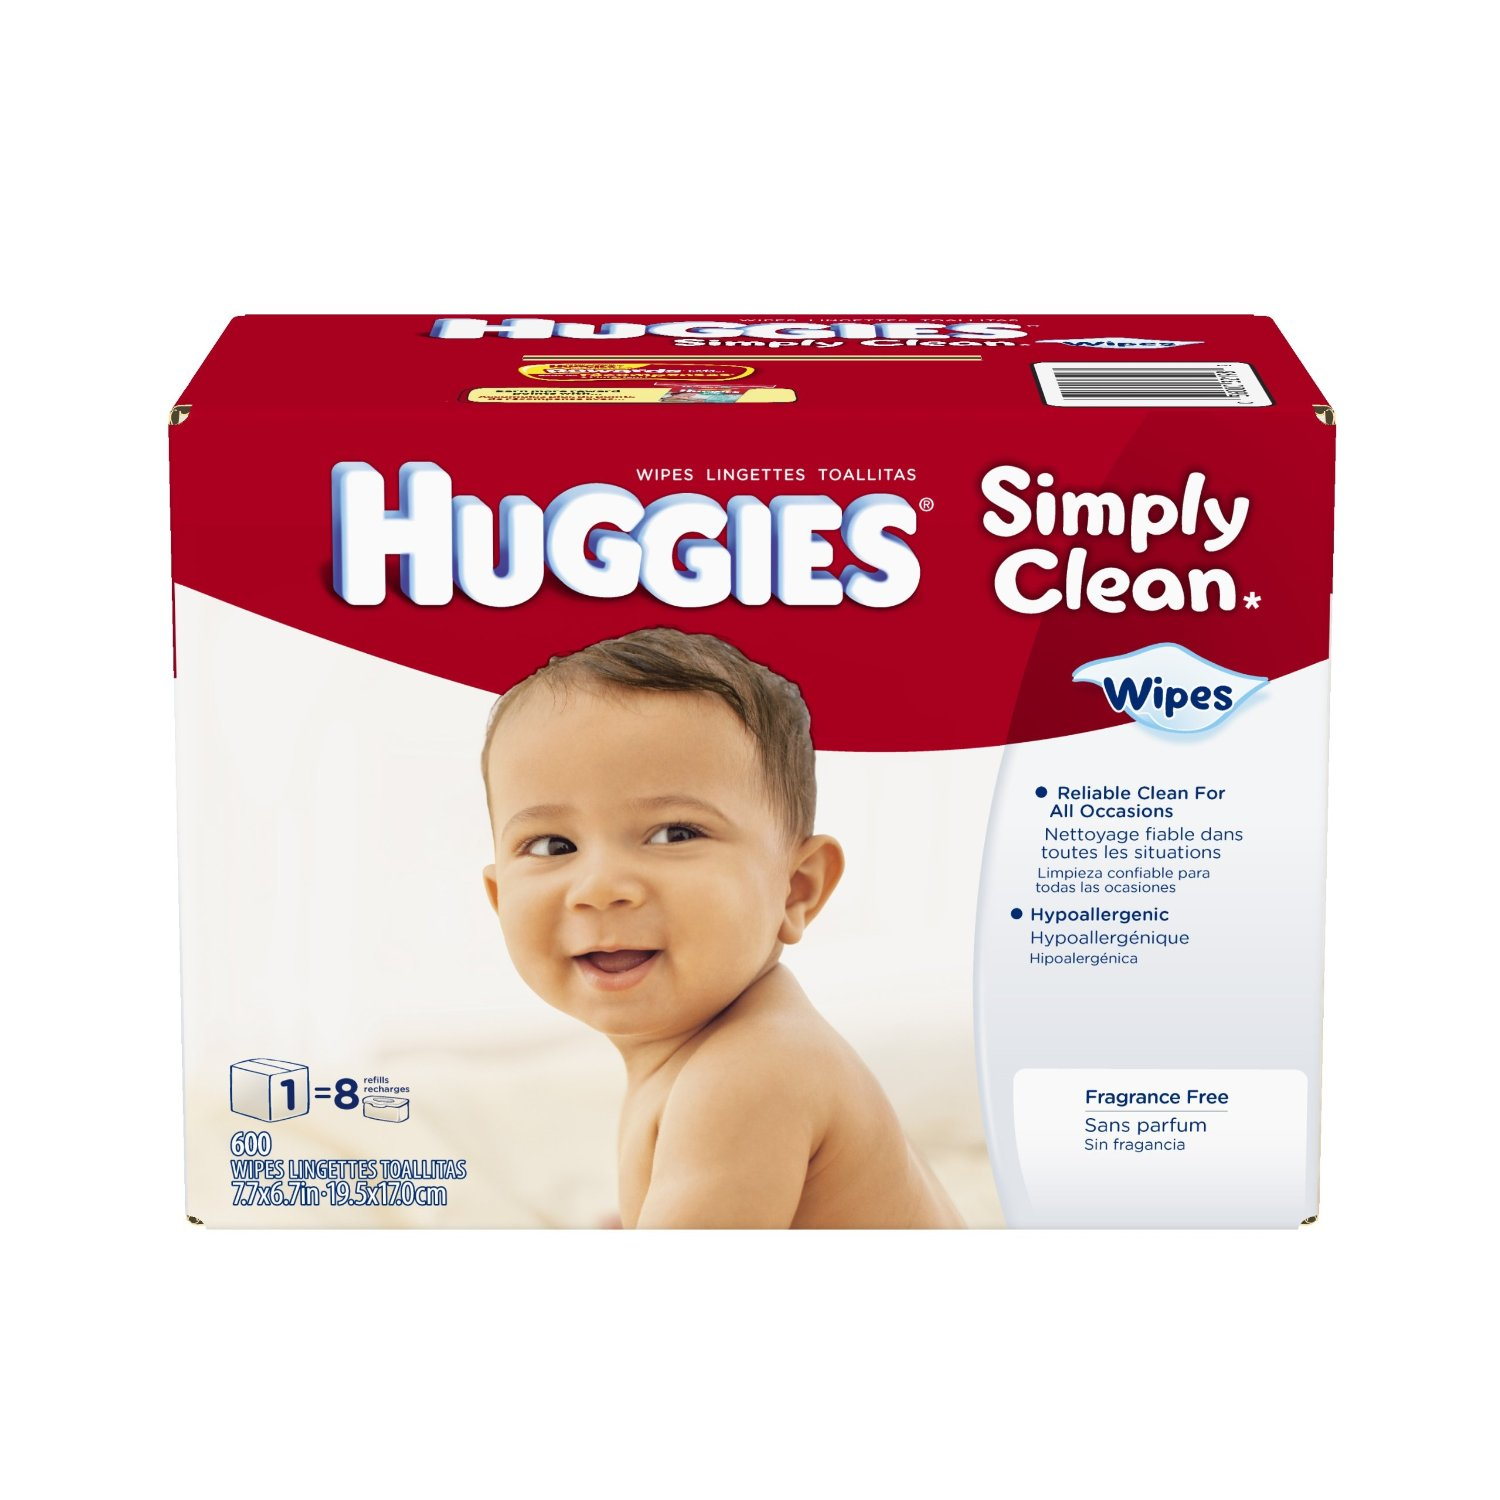 photograph about Huggies Wipes Printable Coupons identify Huggies wipes printable coupon codes june 2018 / Excellent candle discounts